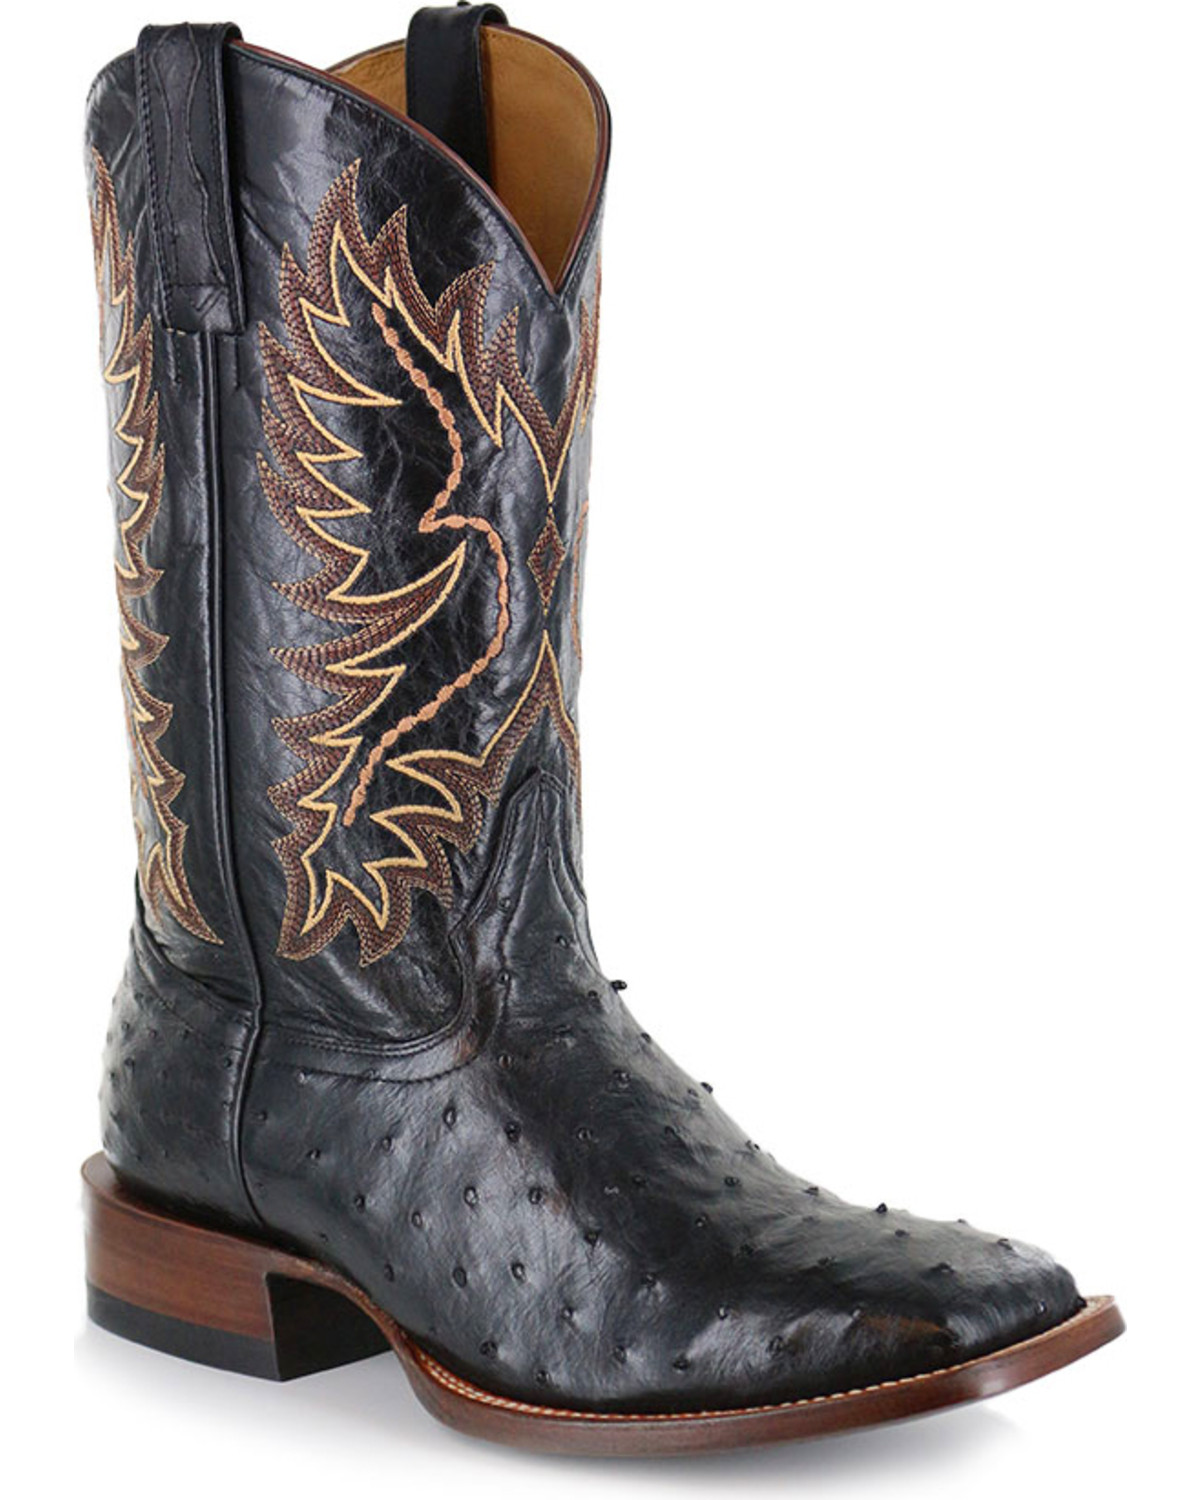 Cody James 174 Men S Full Quill Ostrich Exotic Boots Boot Barn